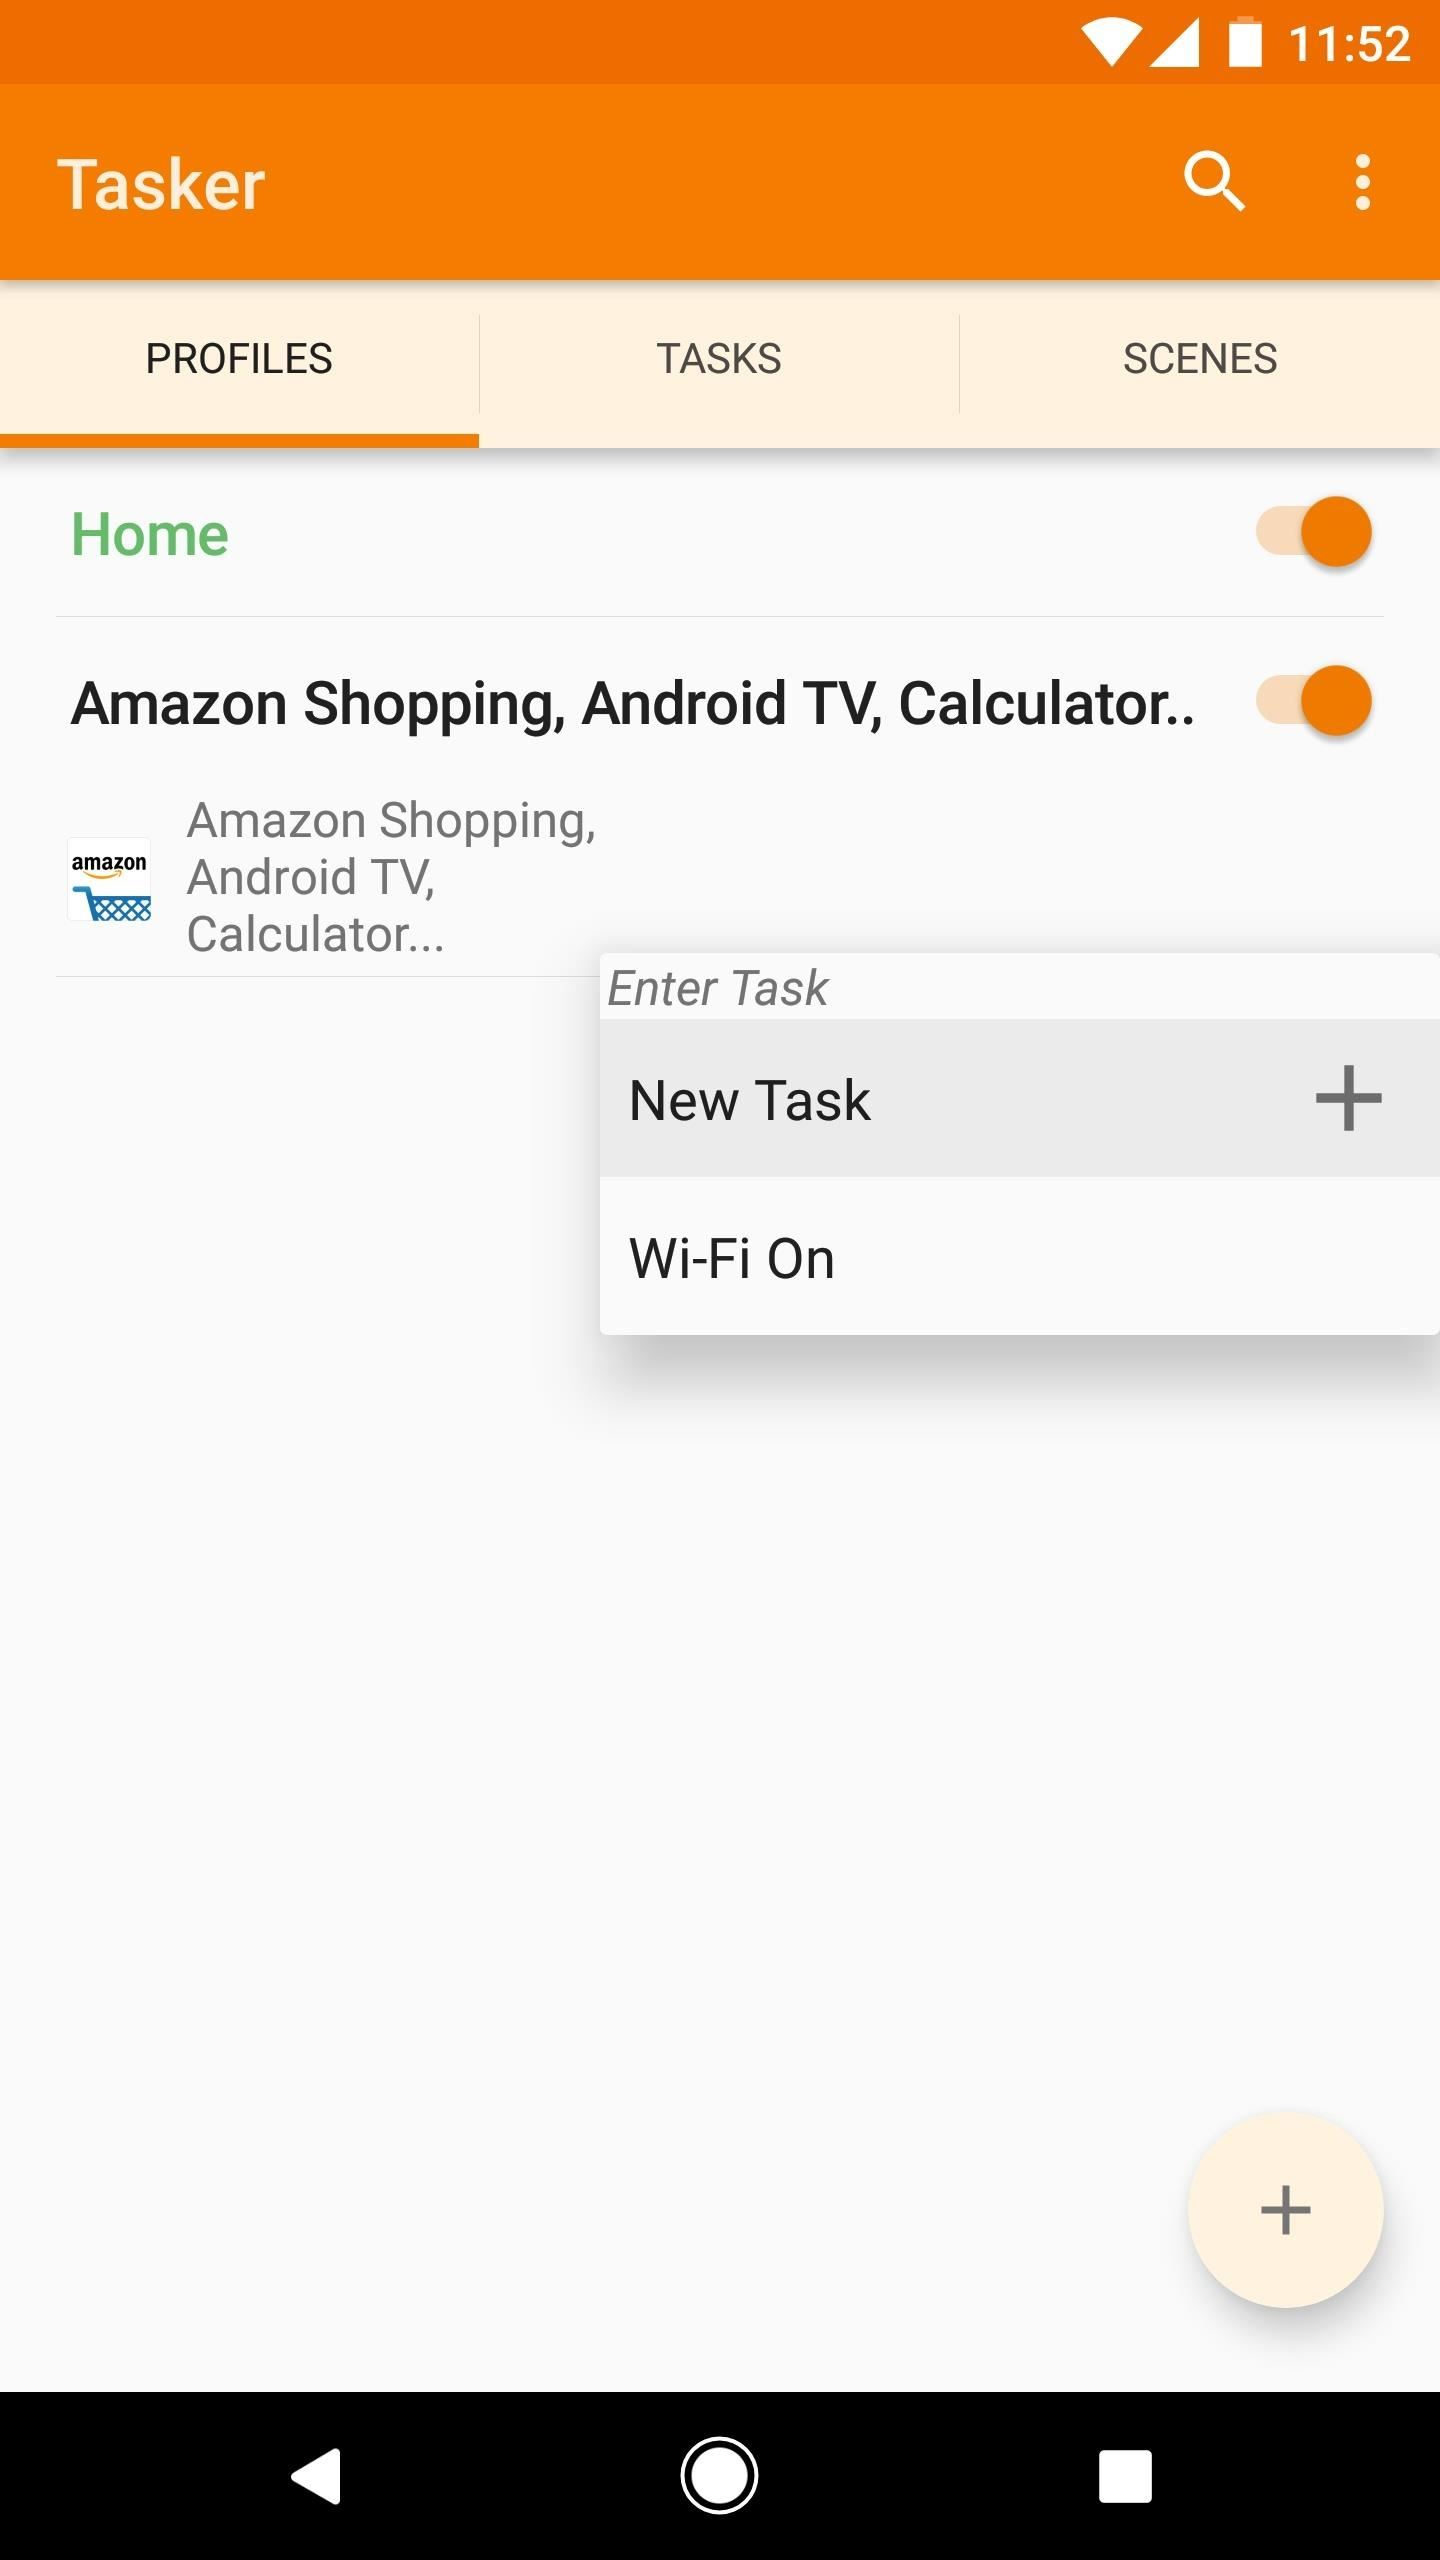 Tasker 101: 5 Useful Profiles to Help Get You Started with Android Automation